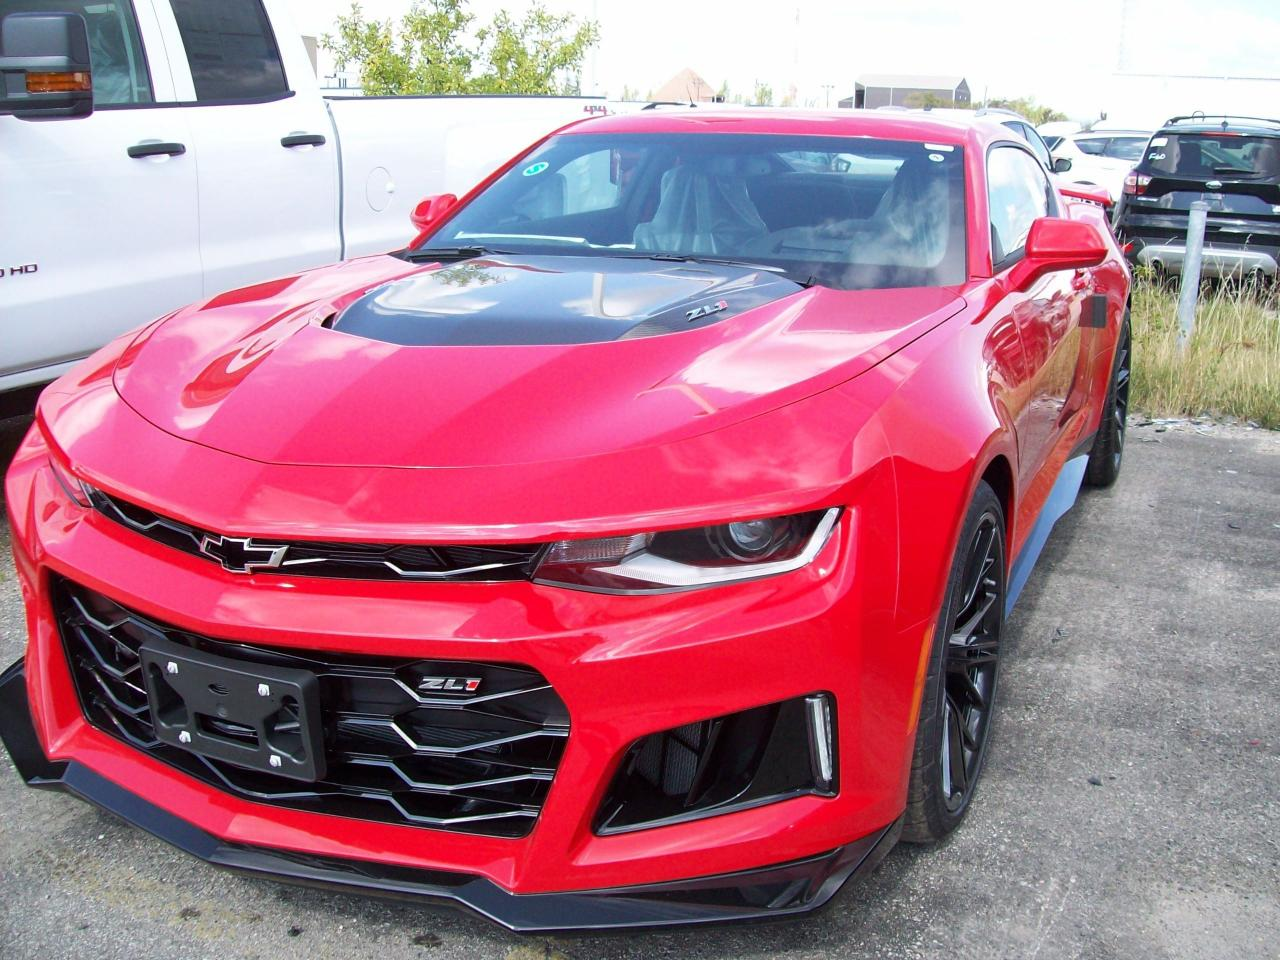 Used 2018 Chevrolet Camaro Zl1 For Sale In Guelph Ontario